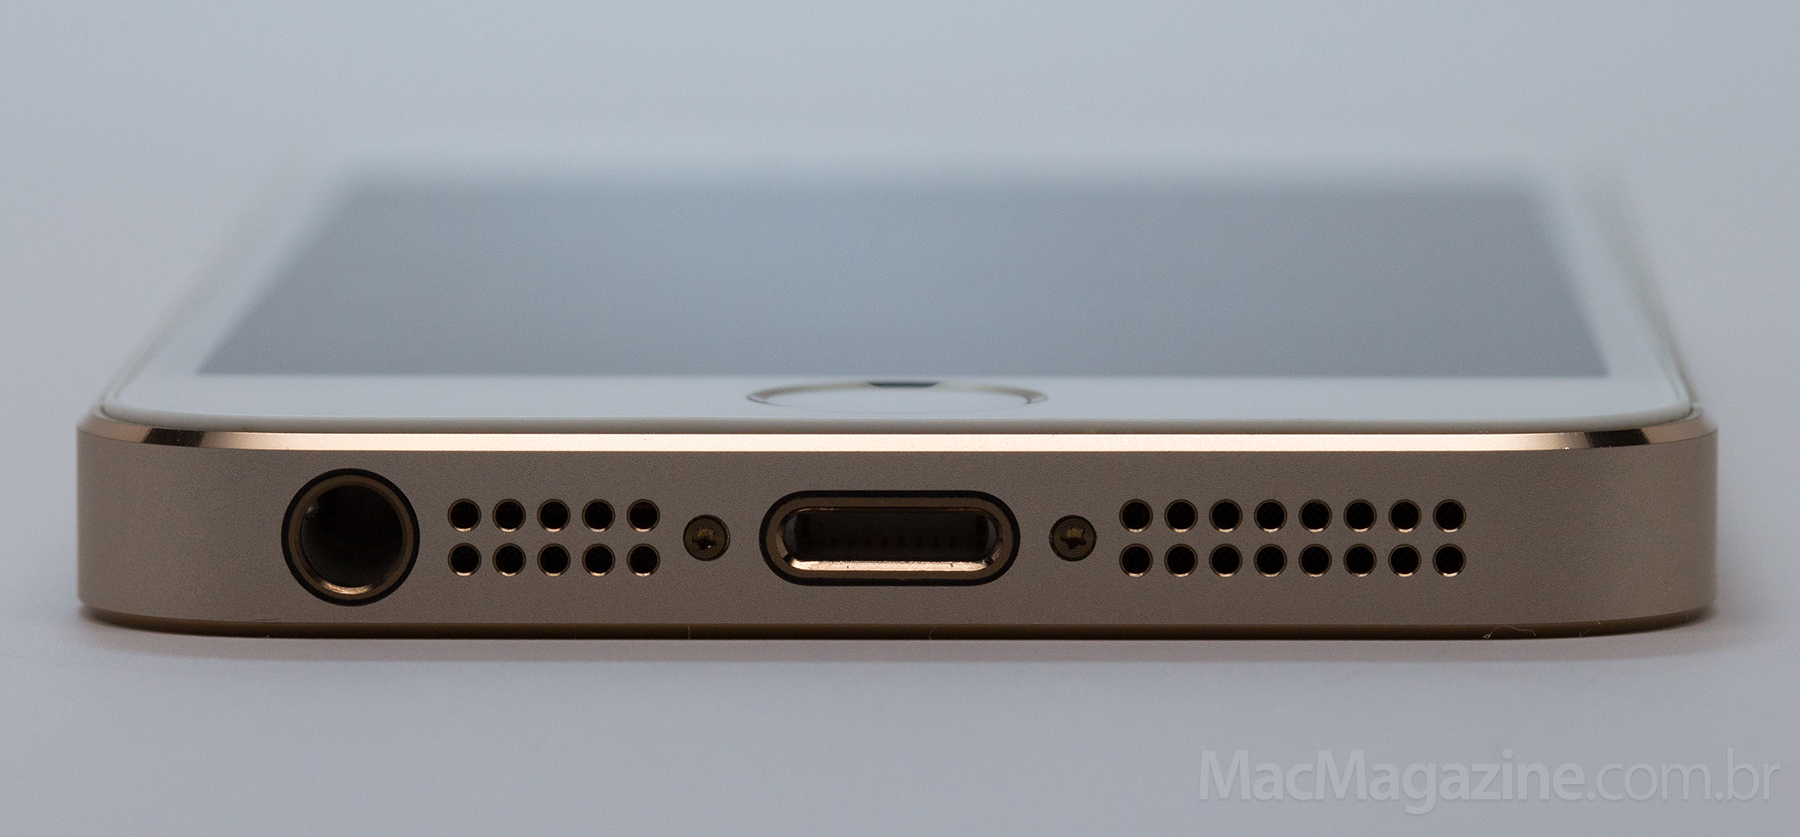 iPhone 5s (by MacMagazine)